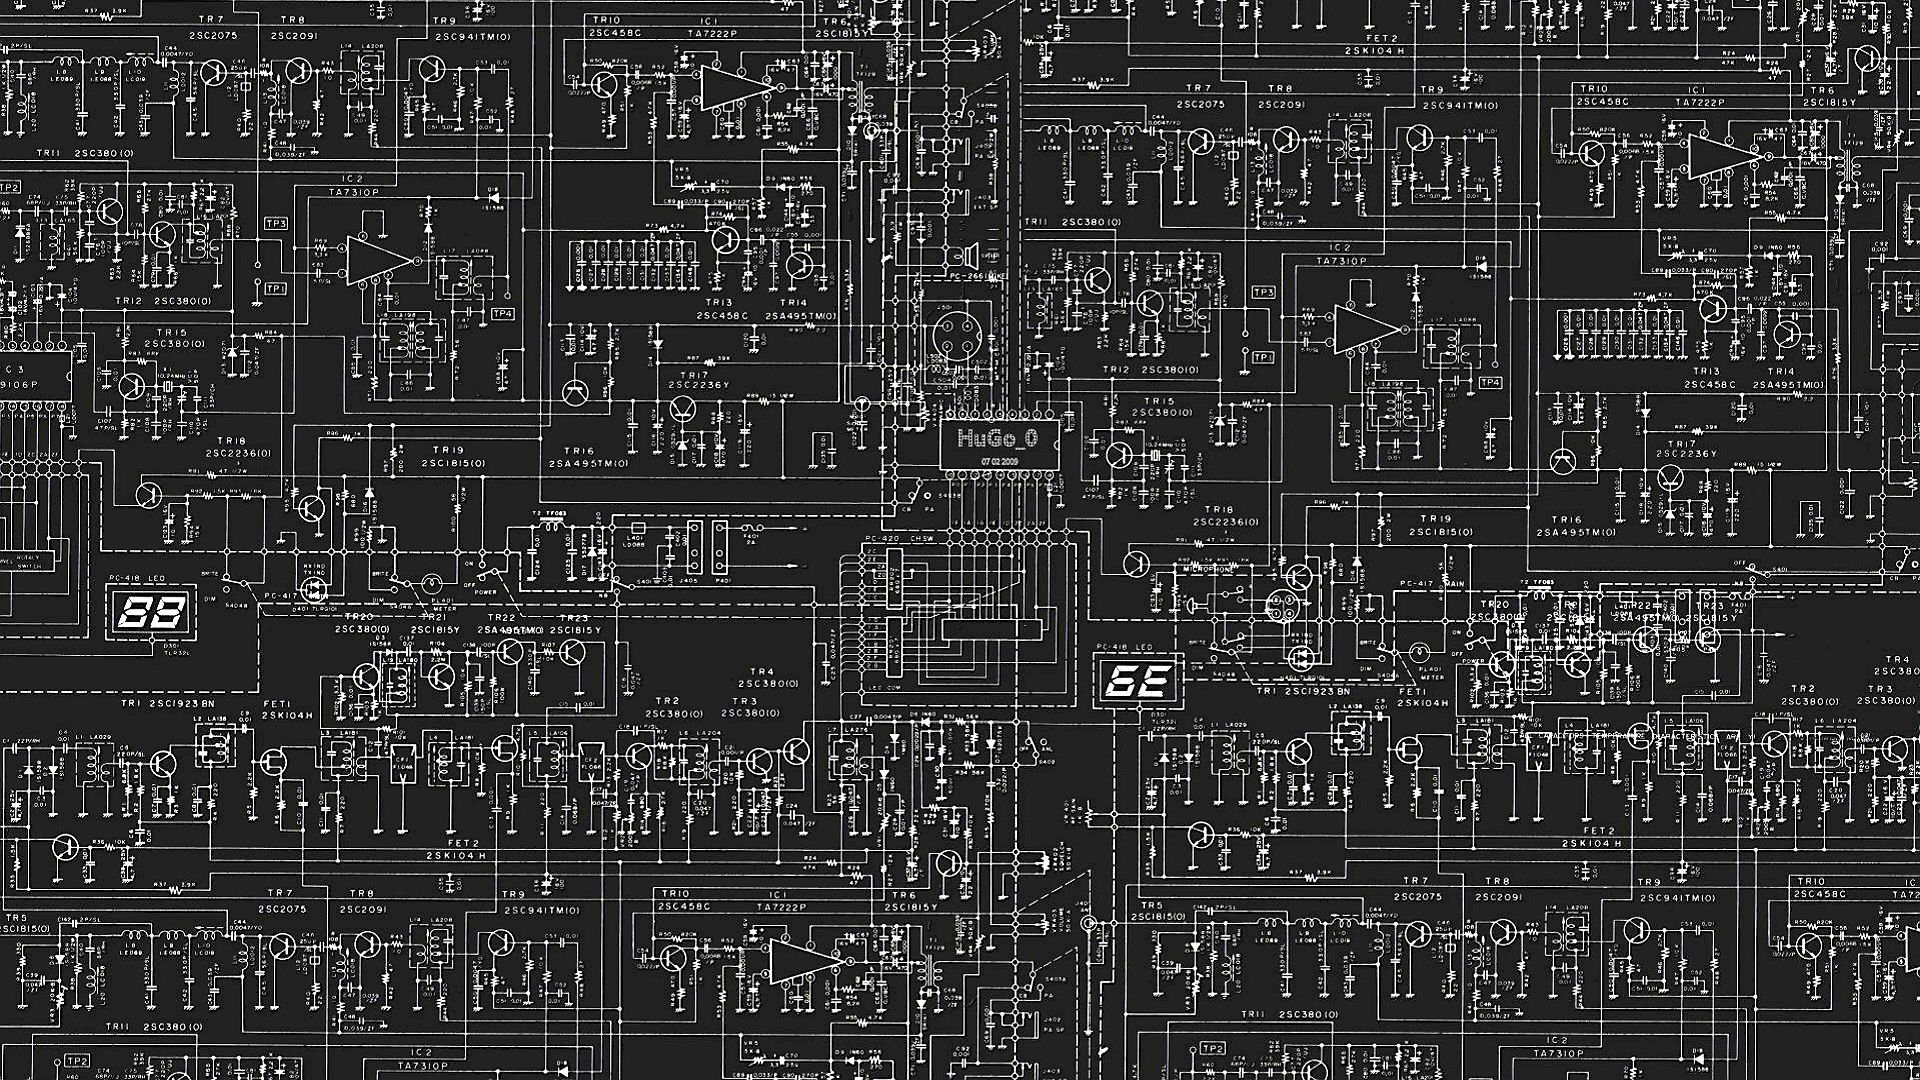 electrical one line diagram software hockey rink engineering wallpaper images for computer (69+ images)